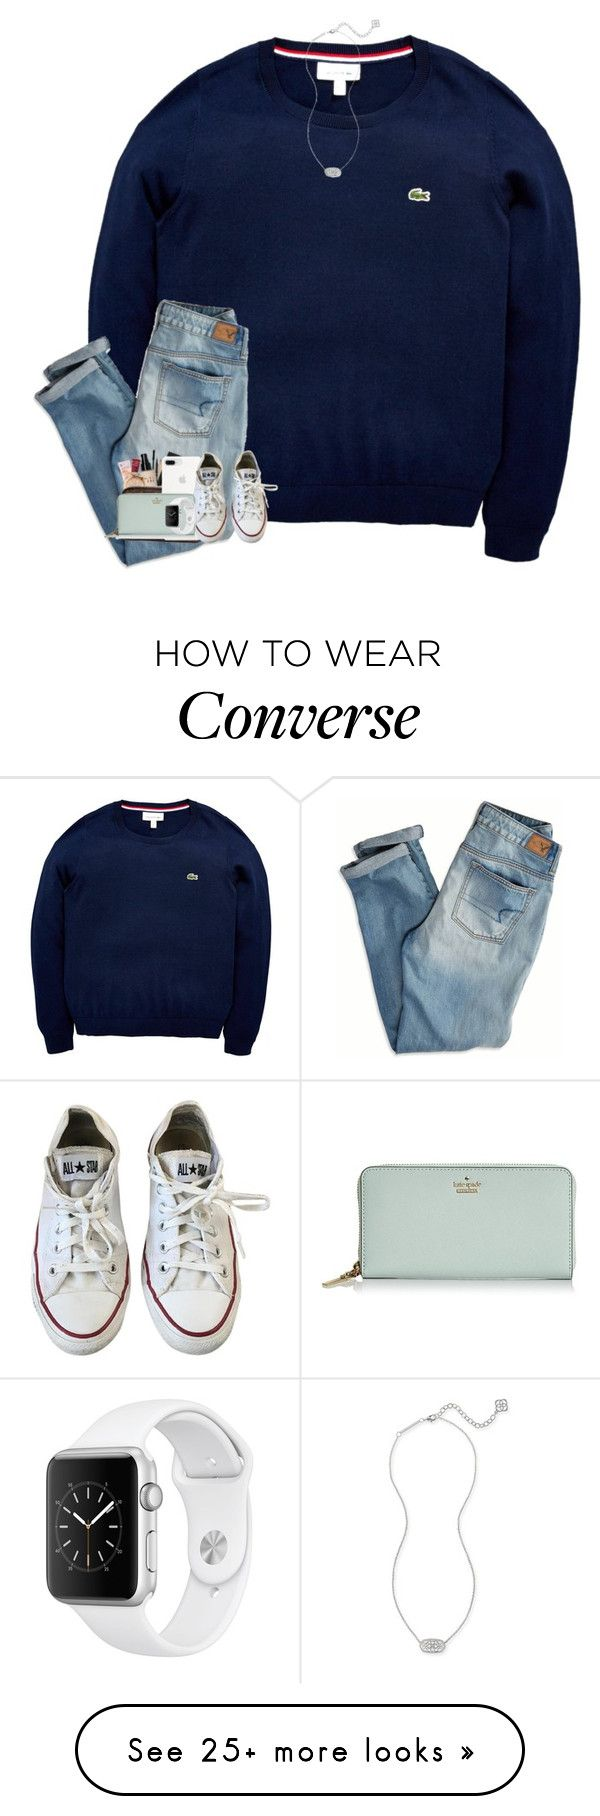 """""""save me✝️"""" by hokieprepster on Polyvore featuring Lacoste, American Eagle Outfitters, Converse, Kate Spade and Kendra Scott"""